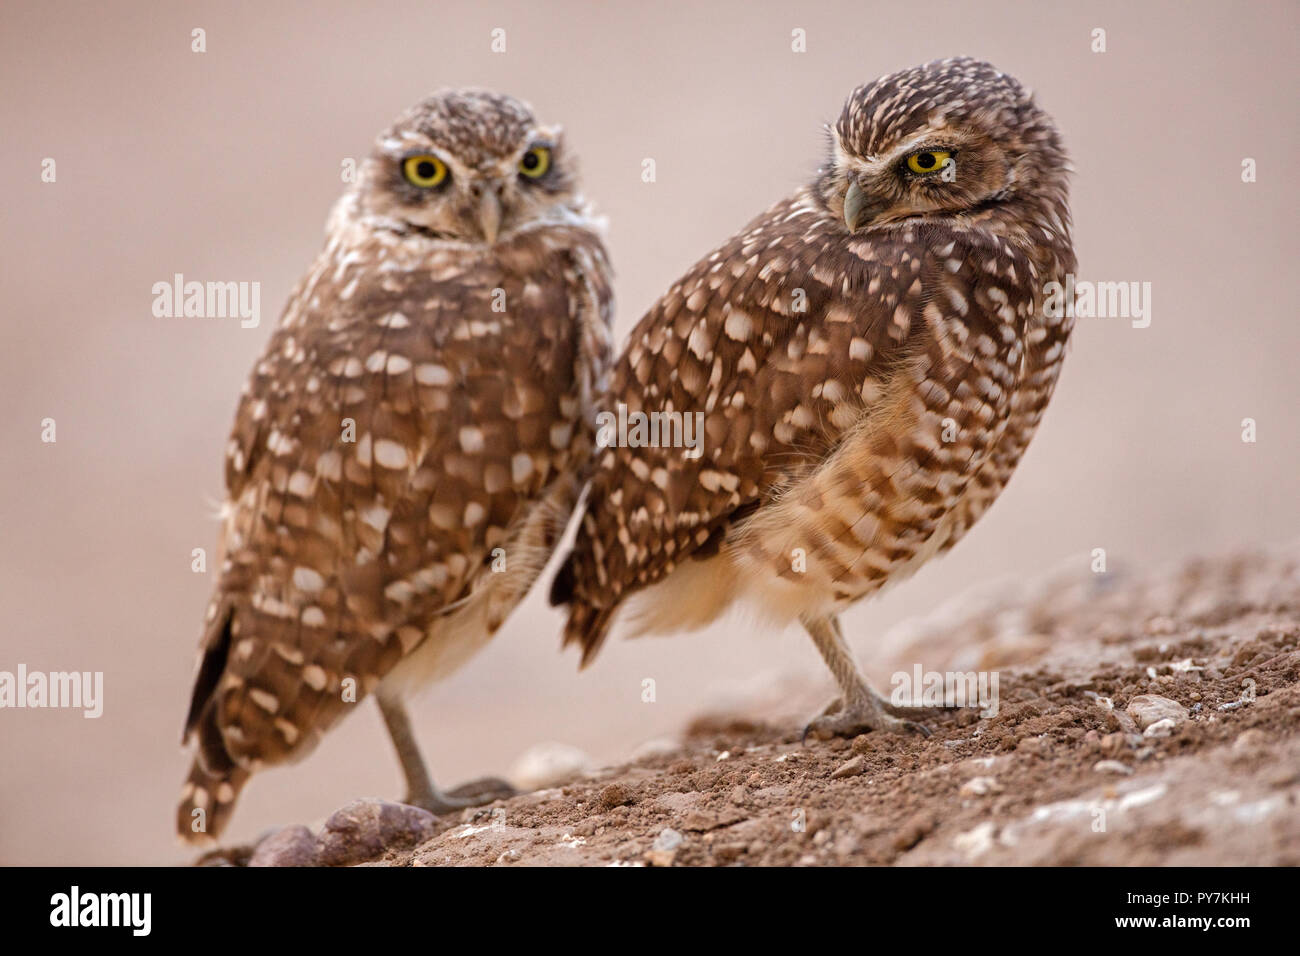 burrowing owl(s), (Athene cunicularia), Arizona - Stock Image